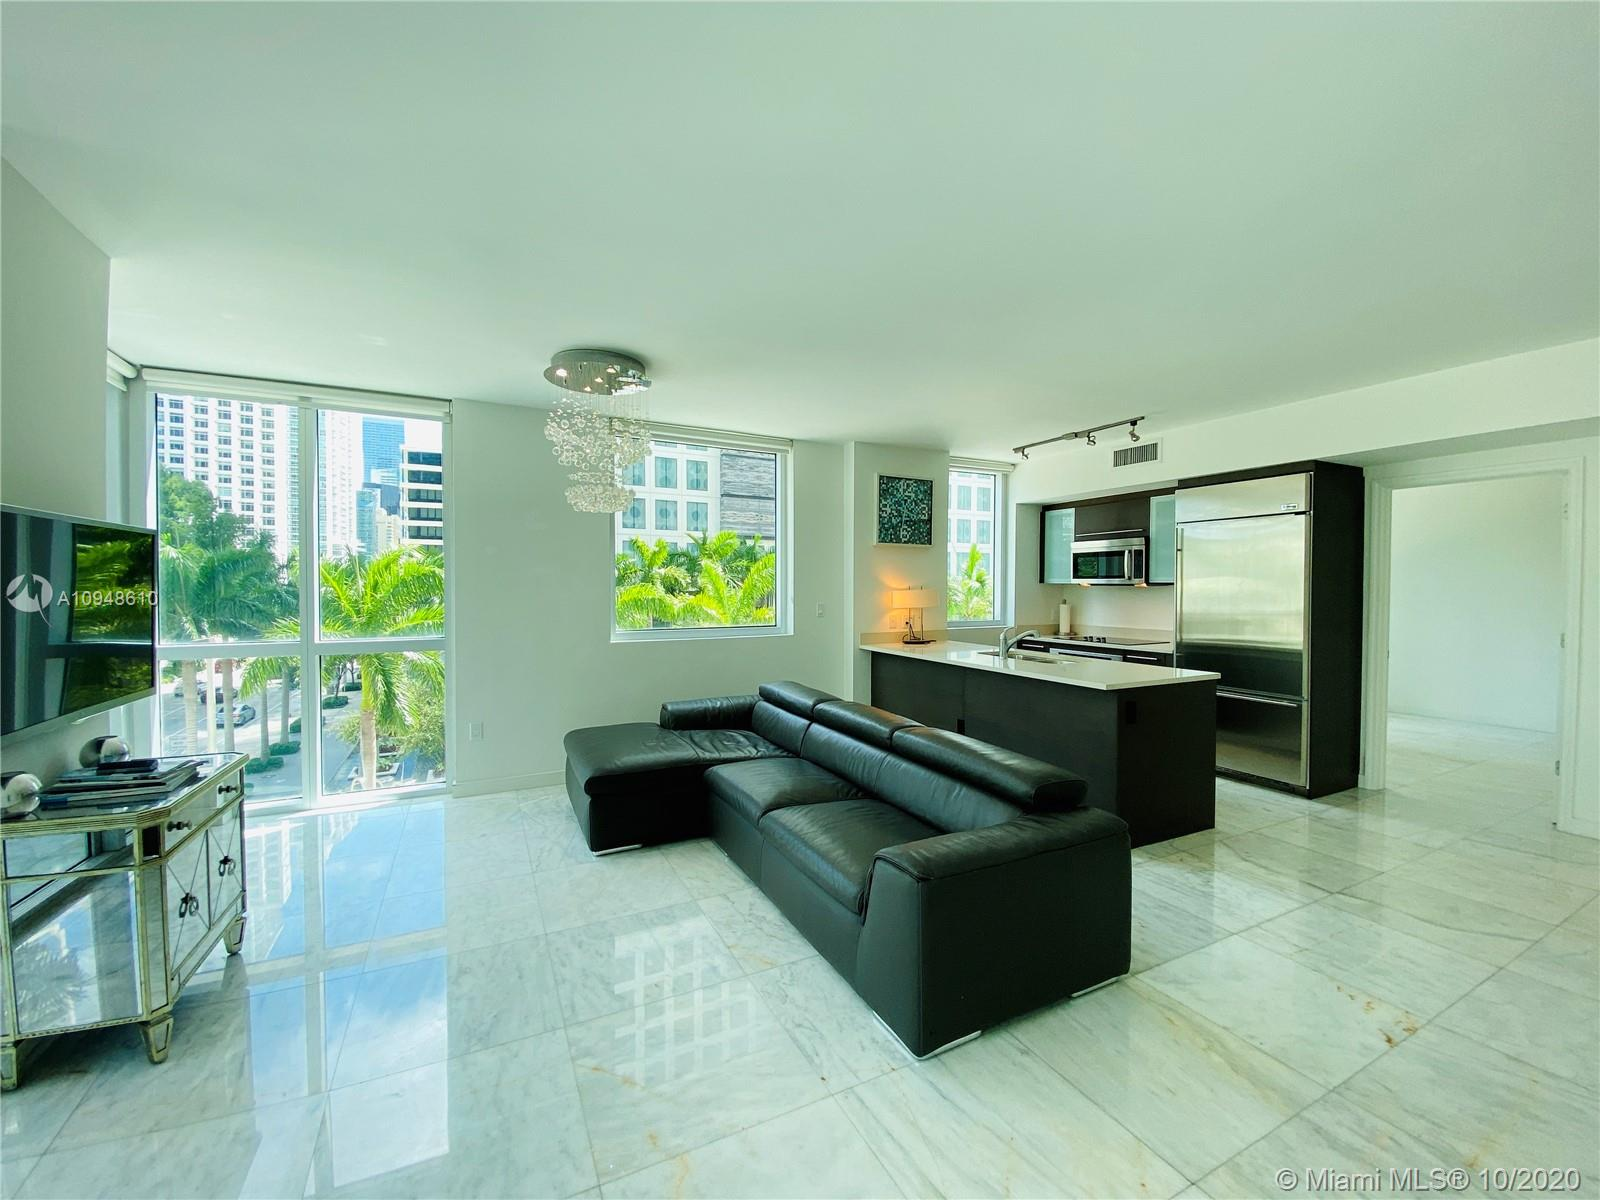 2BR/2BA SPACIOUS CORNER UNIT IN THE HEART OF BRICKELL AVE. EUROPEAN OPEN STYLE KITCHEN, TOP OF THE LINE APPLIANCES. OPEN & SPACIOUS FLOORPLAN, MARBLE FLOORS THROUGHOUT. PARKING ON SAME FLOOR. ENJOY THE UNIQUE AMENITIES: 3 SPECTACULAR POOLS, AND A 42nd FLOOR WITH PANORAMIC VIEW POOL. STATE OF THE ART FITNESS CENTER, WINE CELLAR ROOM, SPORT BAR ROOM, UNIQUE THEATER, WALKING DISTANCE OF MARY BRICKELL VILLAGE AND AL THE FINANCIAL DISTRICT & RESTAURANTS. BASIC CABLE & INTERNET INCLUDED.